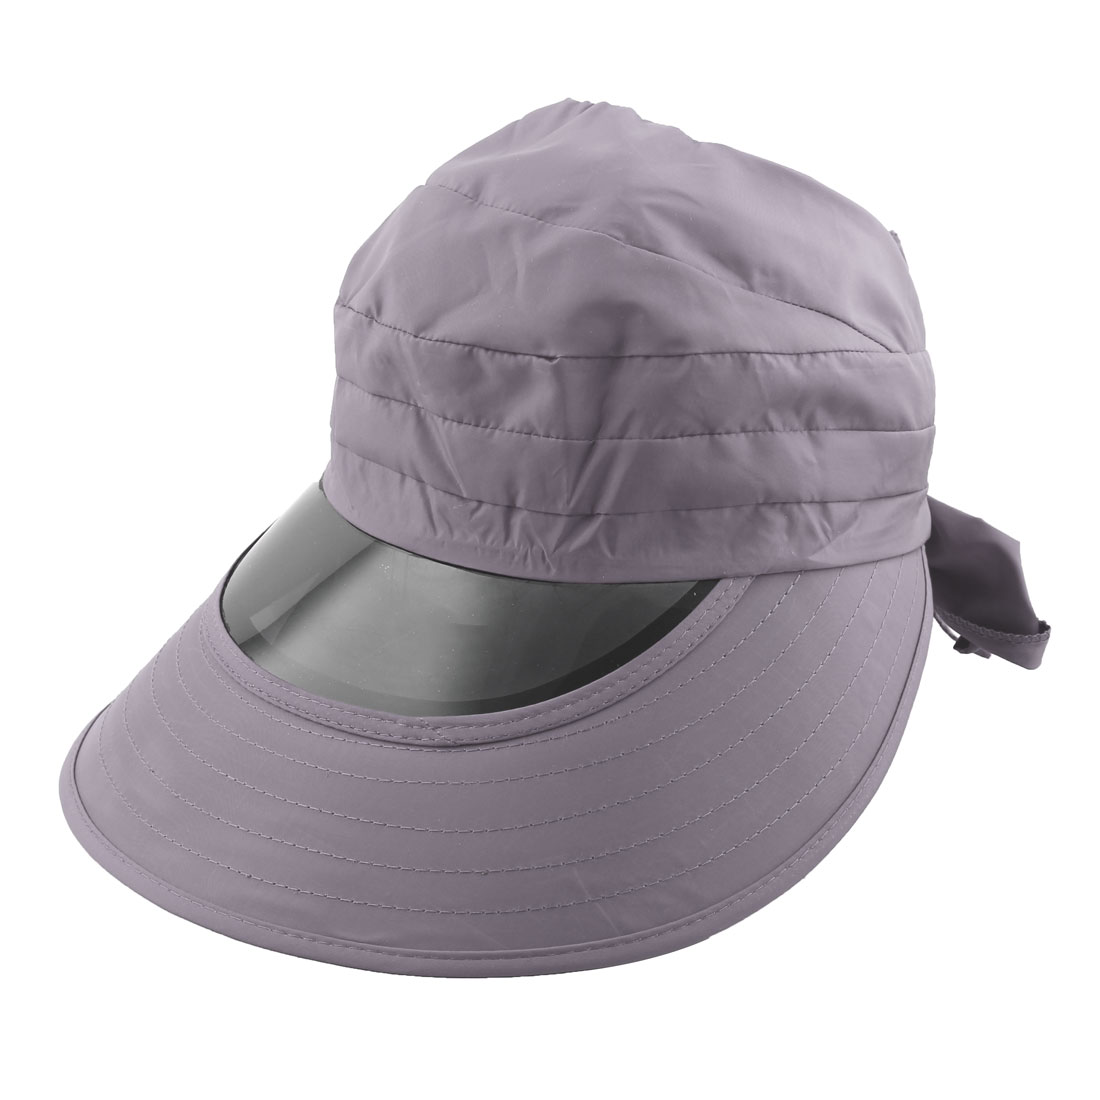 Woman Outdoor Travel Cycling Summer Beach Wide Brimmed Cap Sun Protective Visor Hat Gray